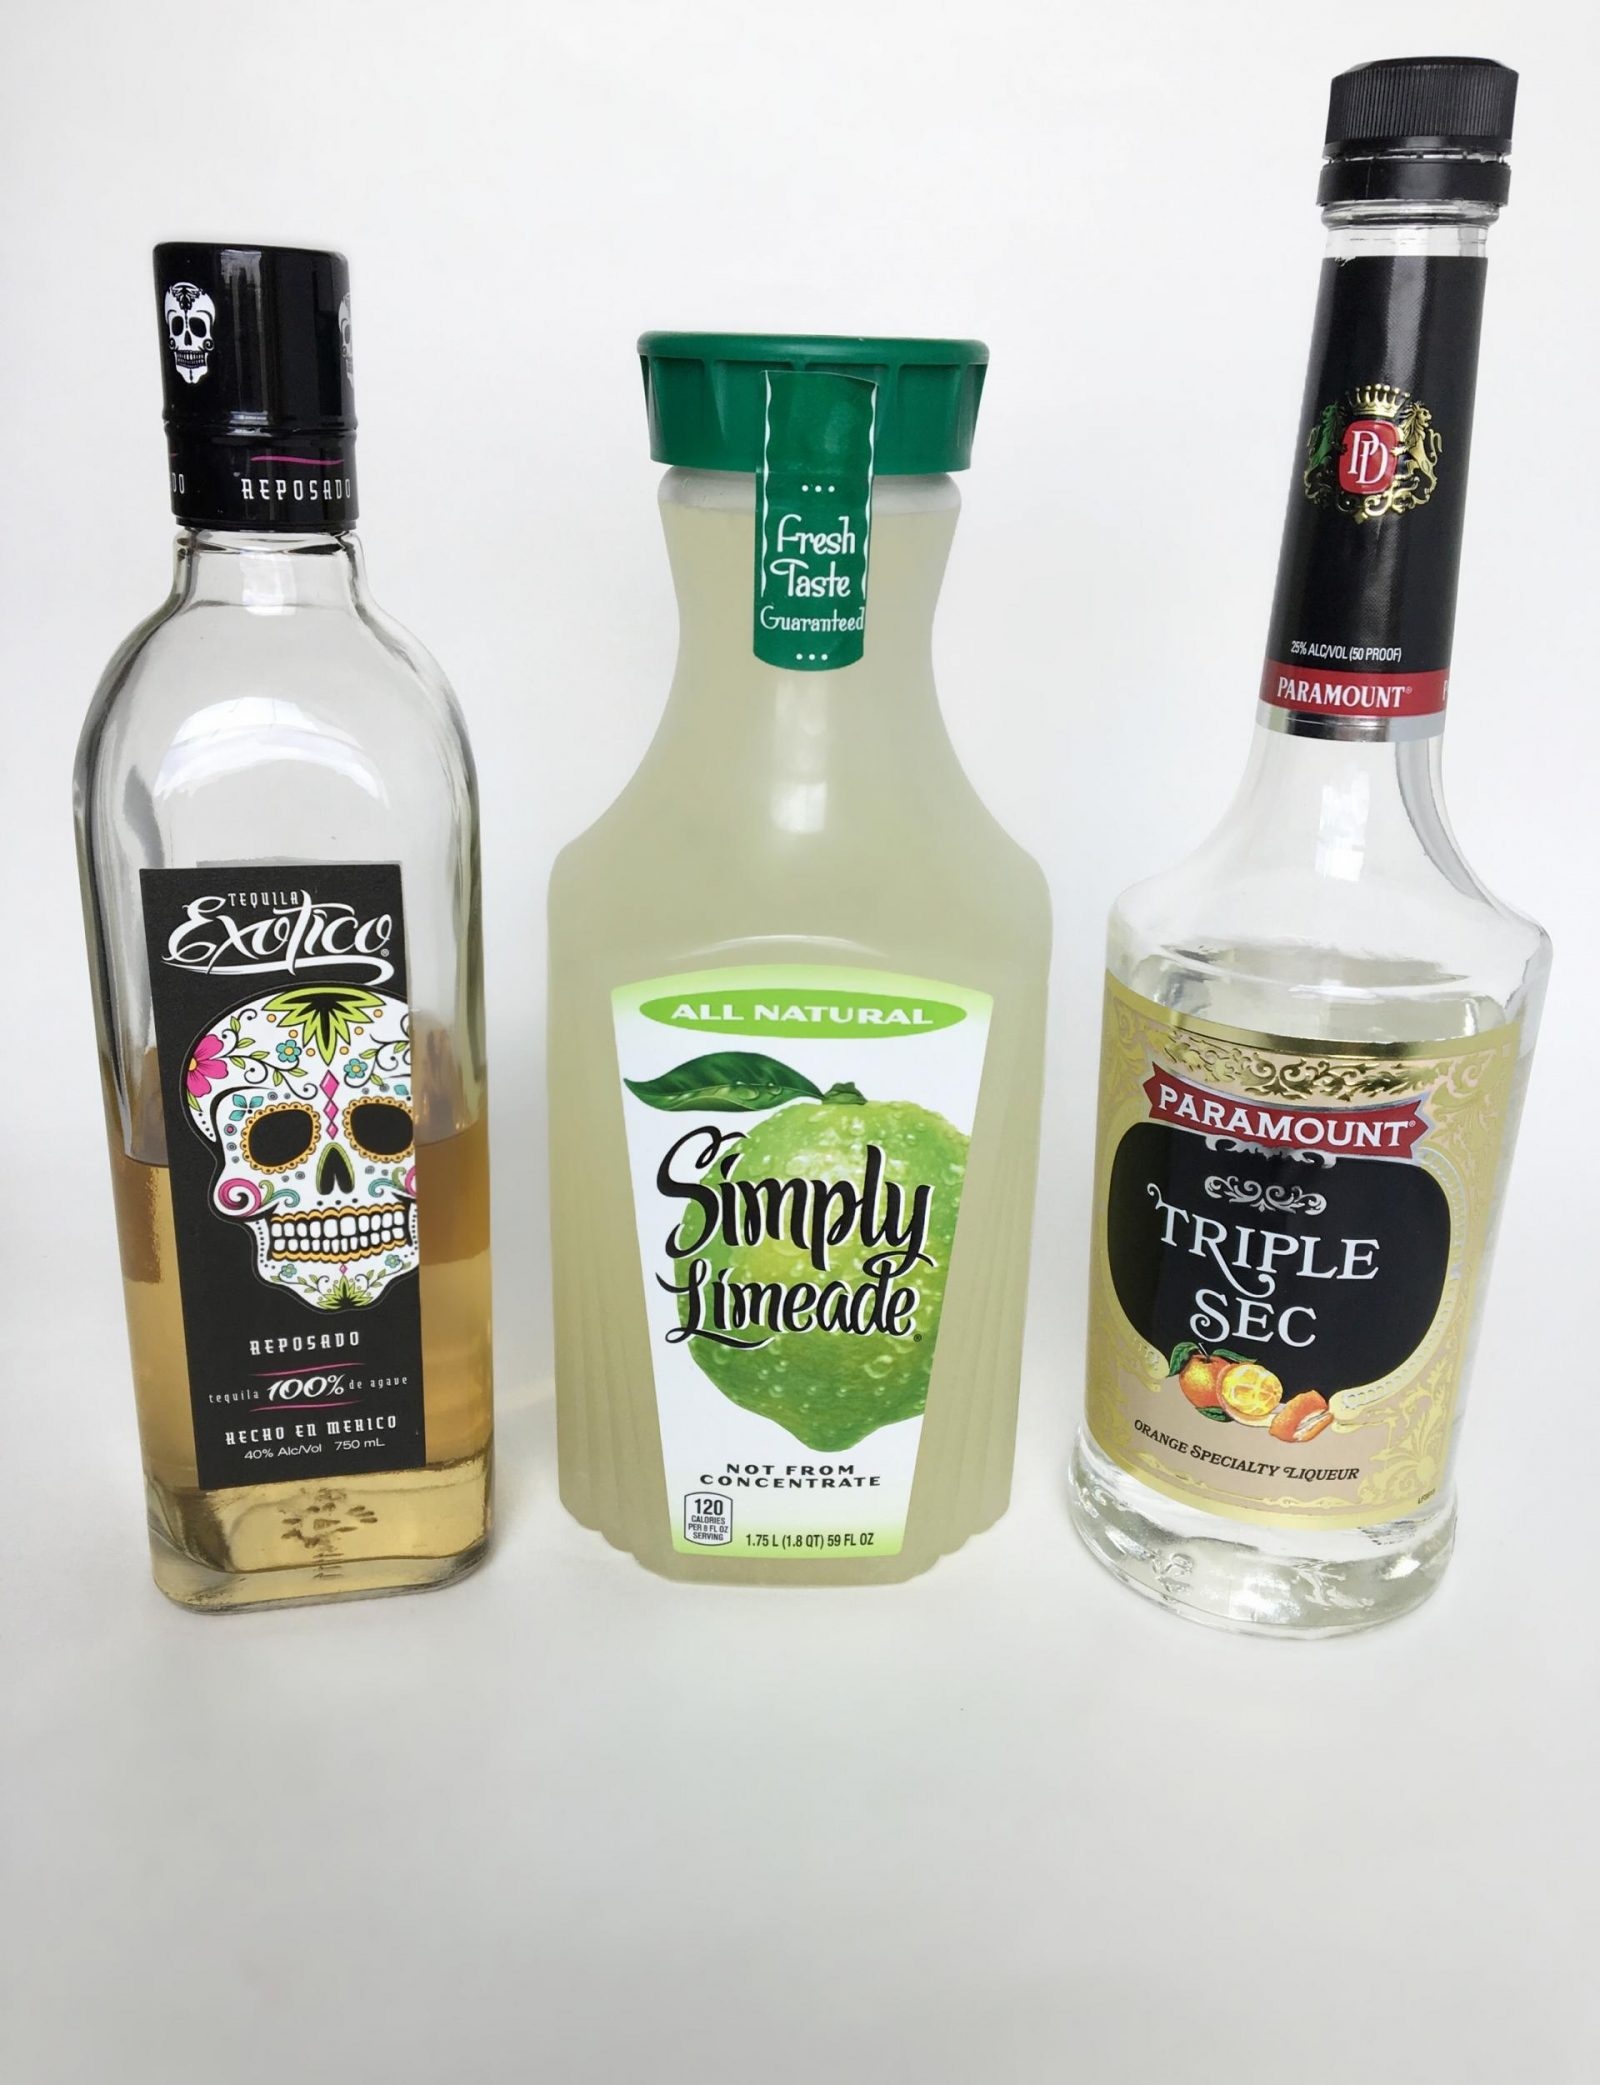 3 Ingredient margarita | Bolt Blogs